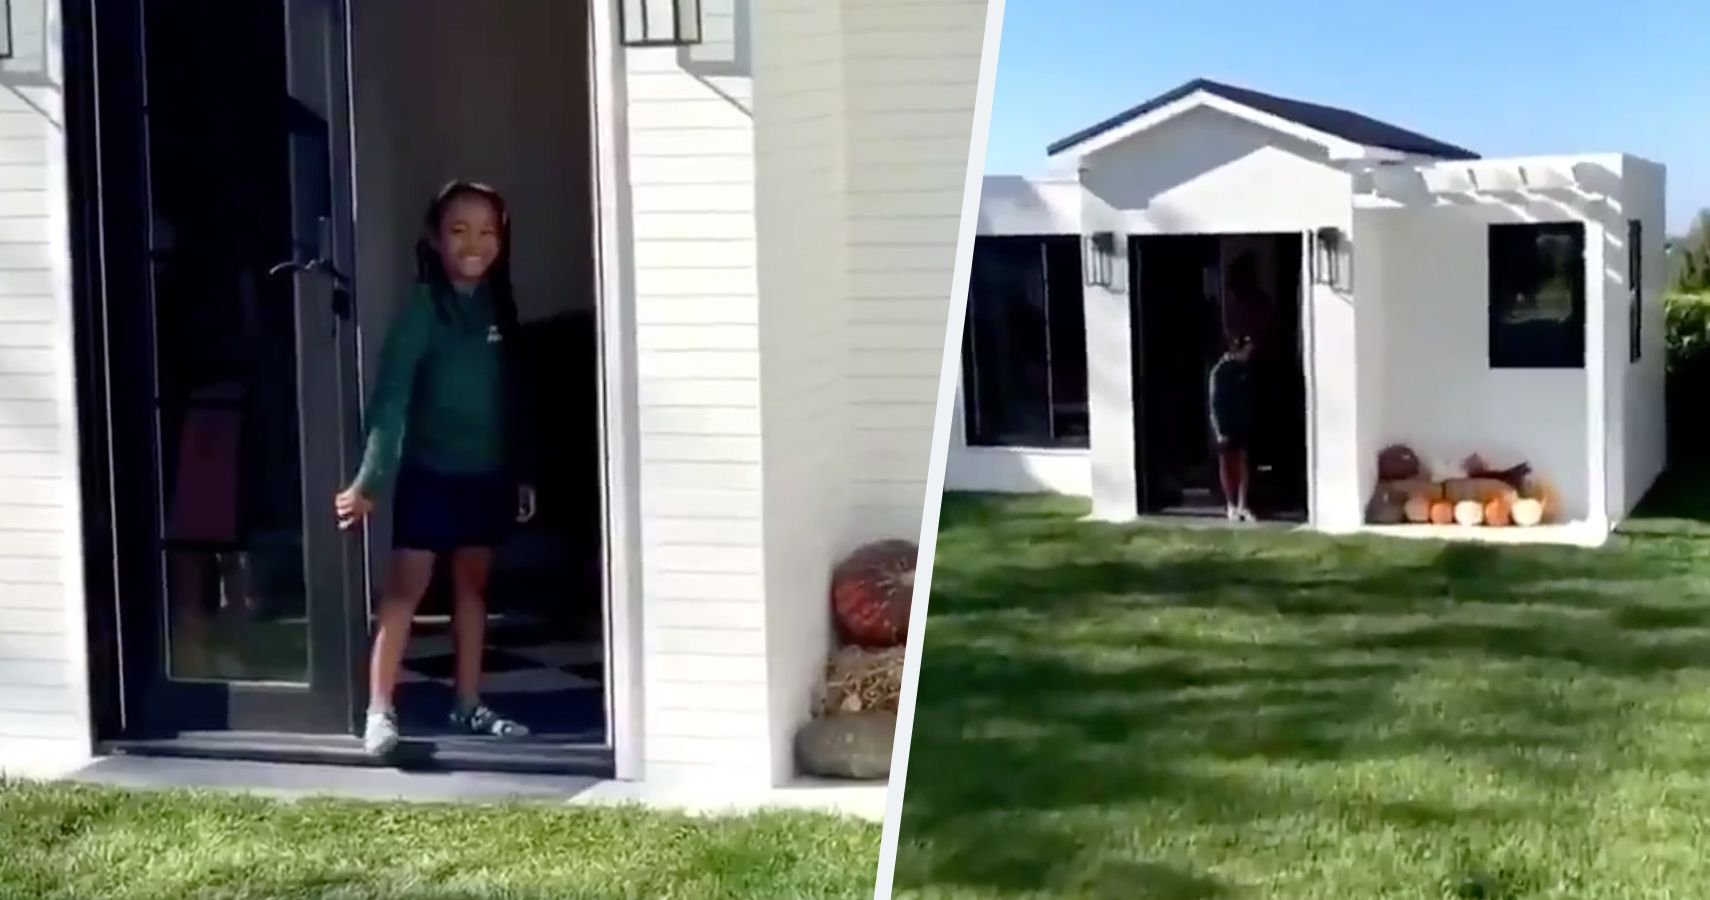 Lebron James Daughter Playhouse Is Massive | Moms.com